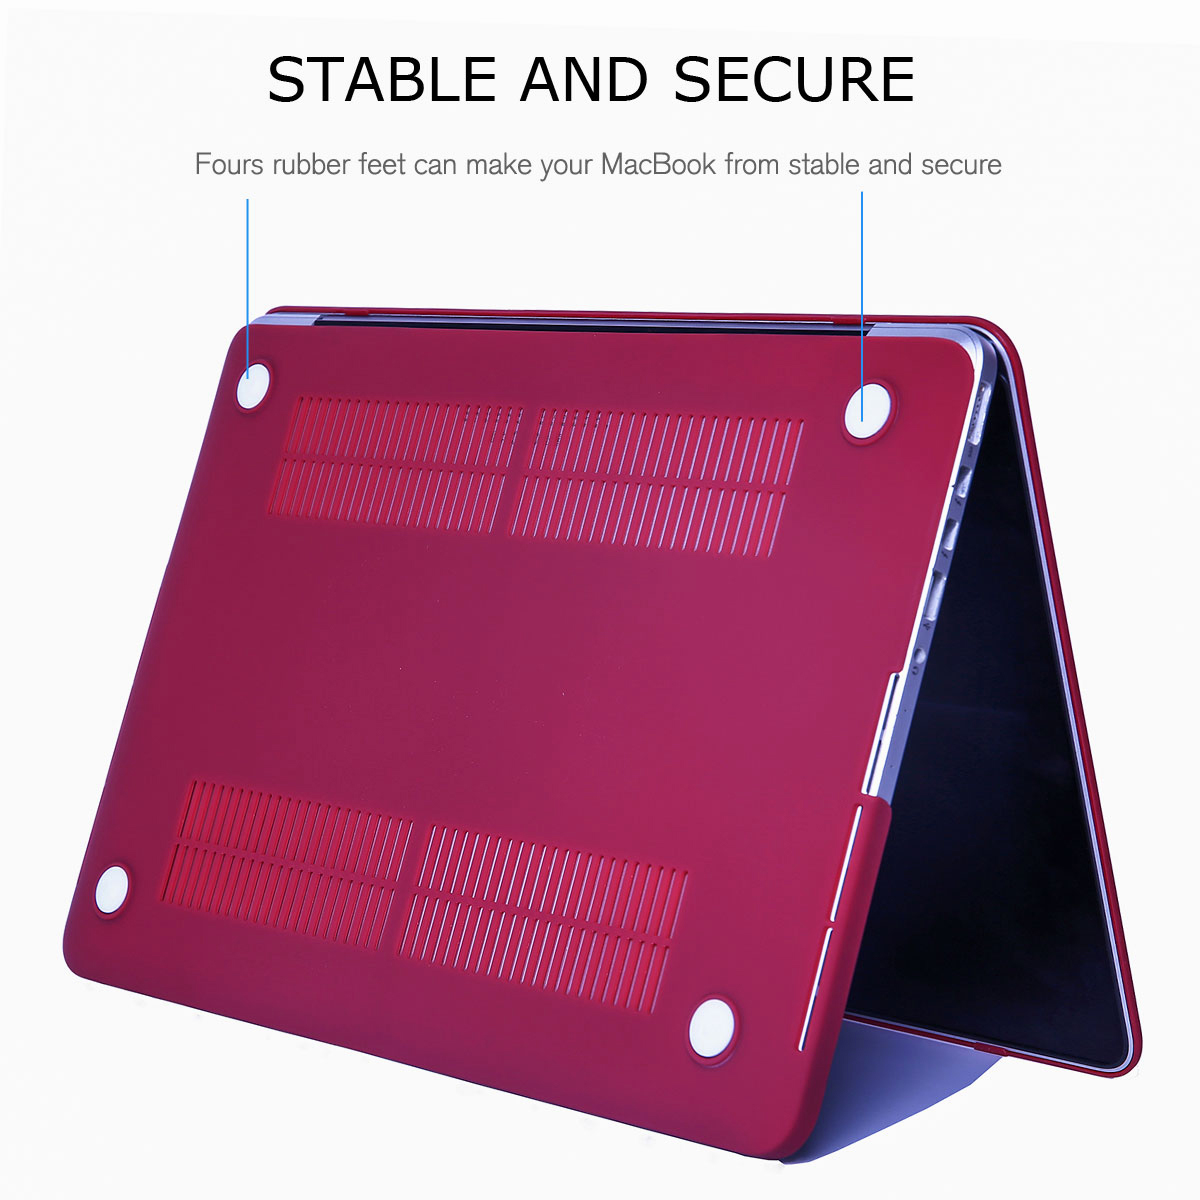 Matte-Rubberized-Hard-Case-Cover-Shell-For-Macbook-Pro-Retina-12-039-039-13-039-039-15-Inch thumbnail 53